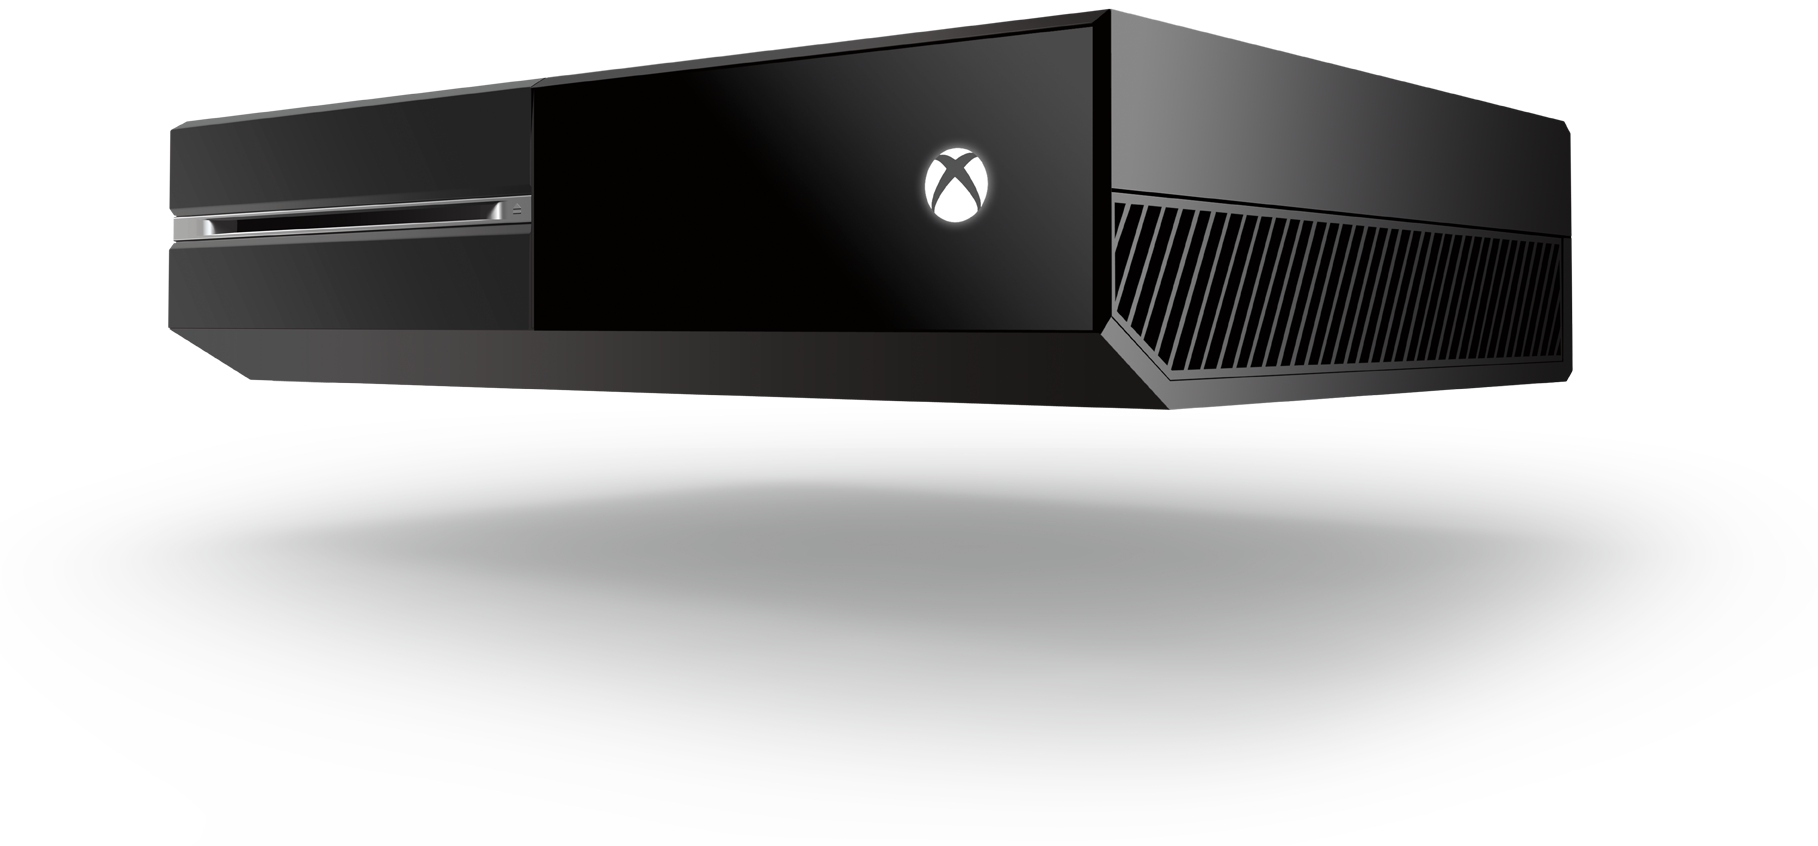 Xbox One uses HDMI output, doesn't support component